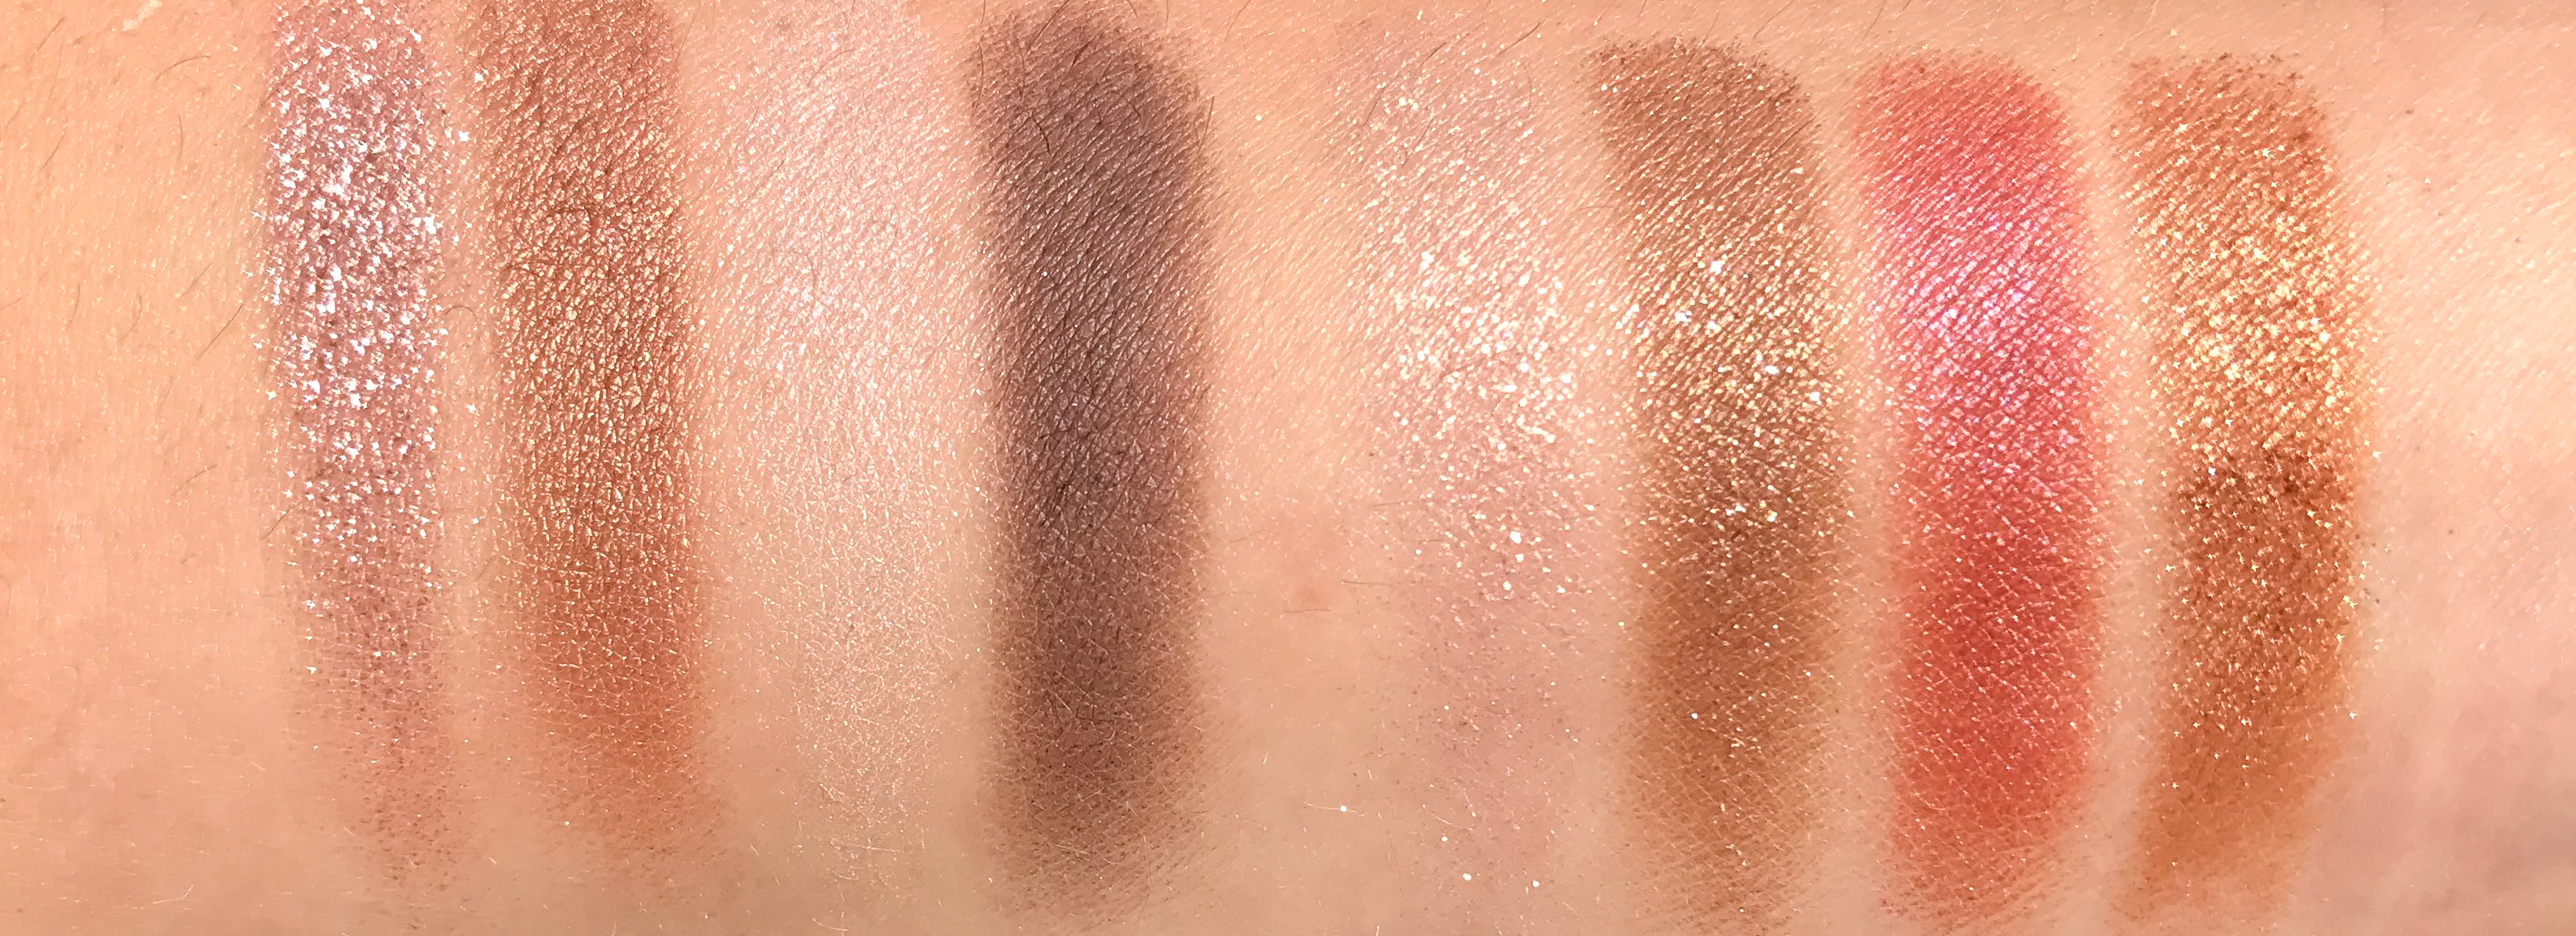 NARS Fall 2018 Makeup Collection Review and Swatches Singapore Mojave Quad